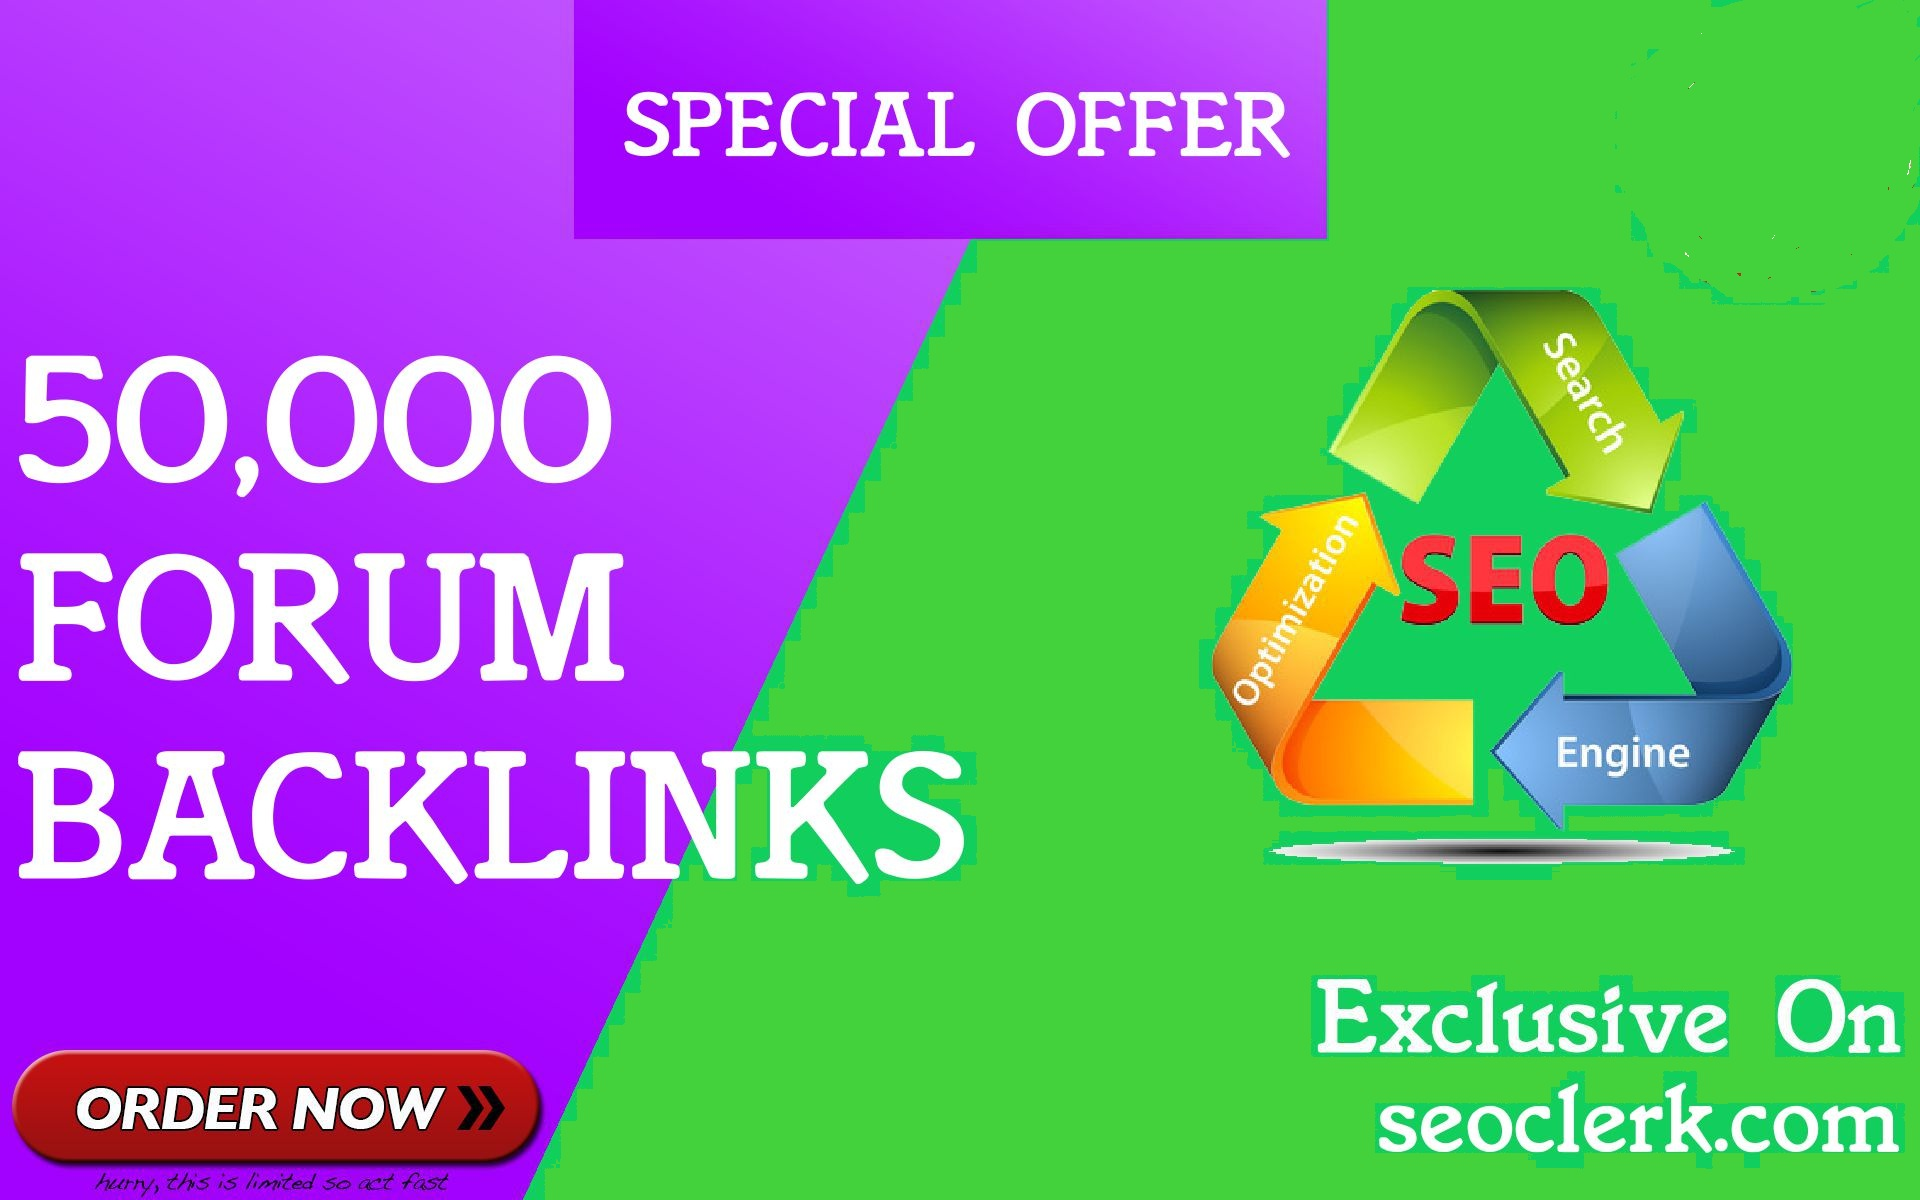 50,000 GSA SER Forum Backlinks for Google SEO